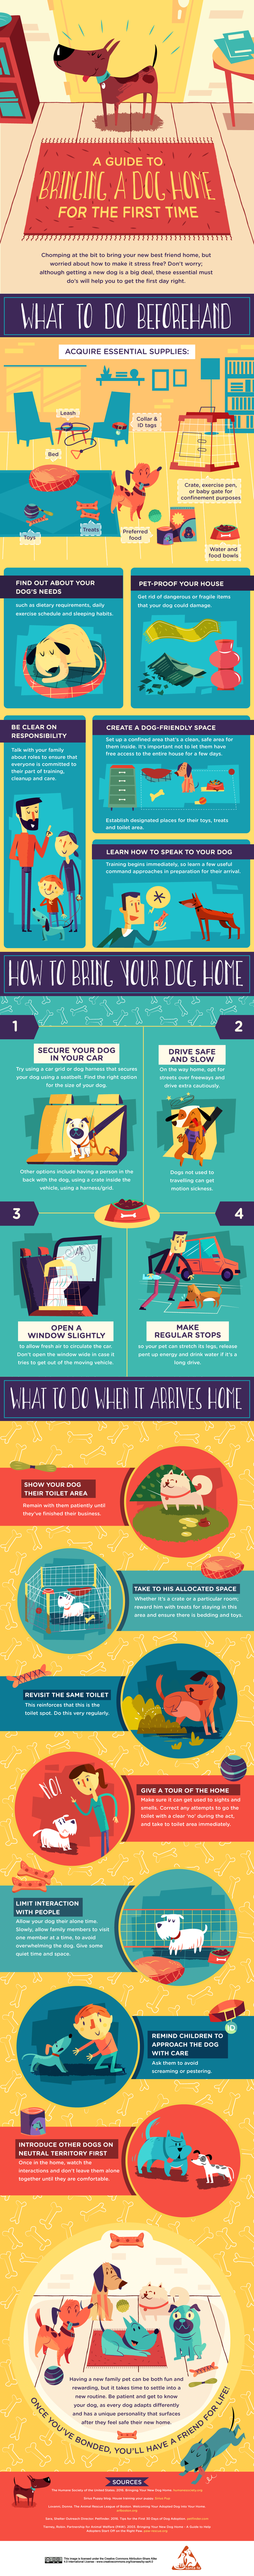 A Guide to Bringing a Dog Home For the First Time